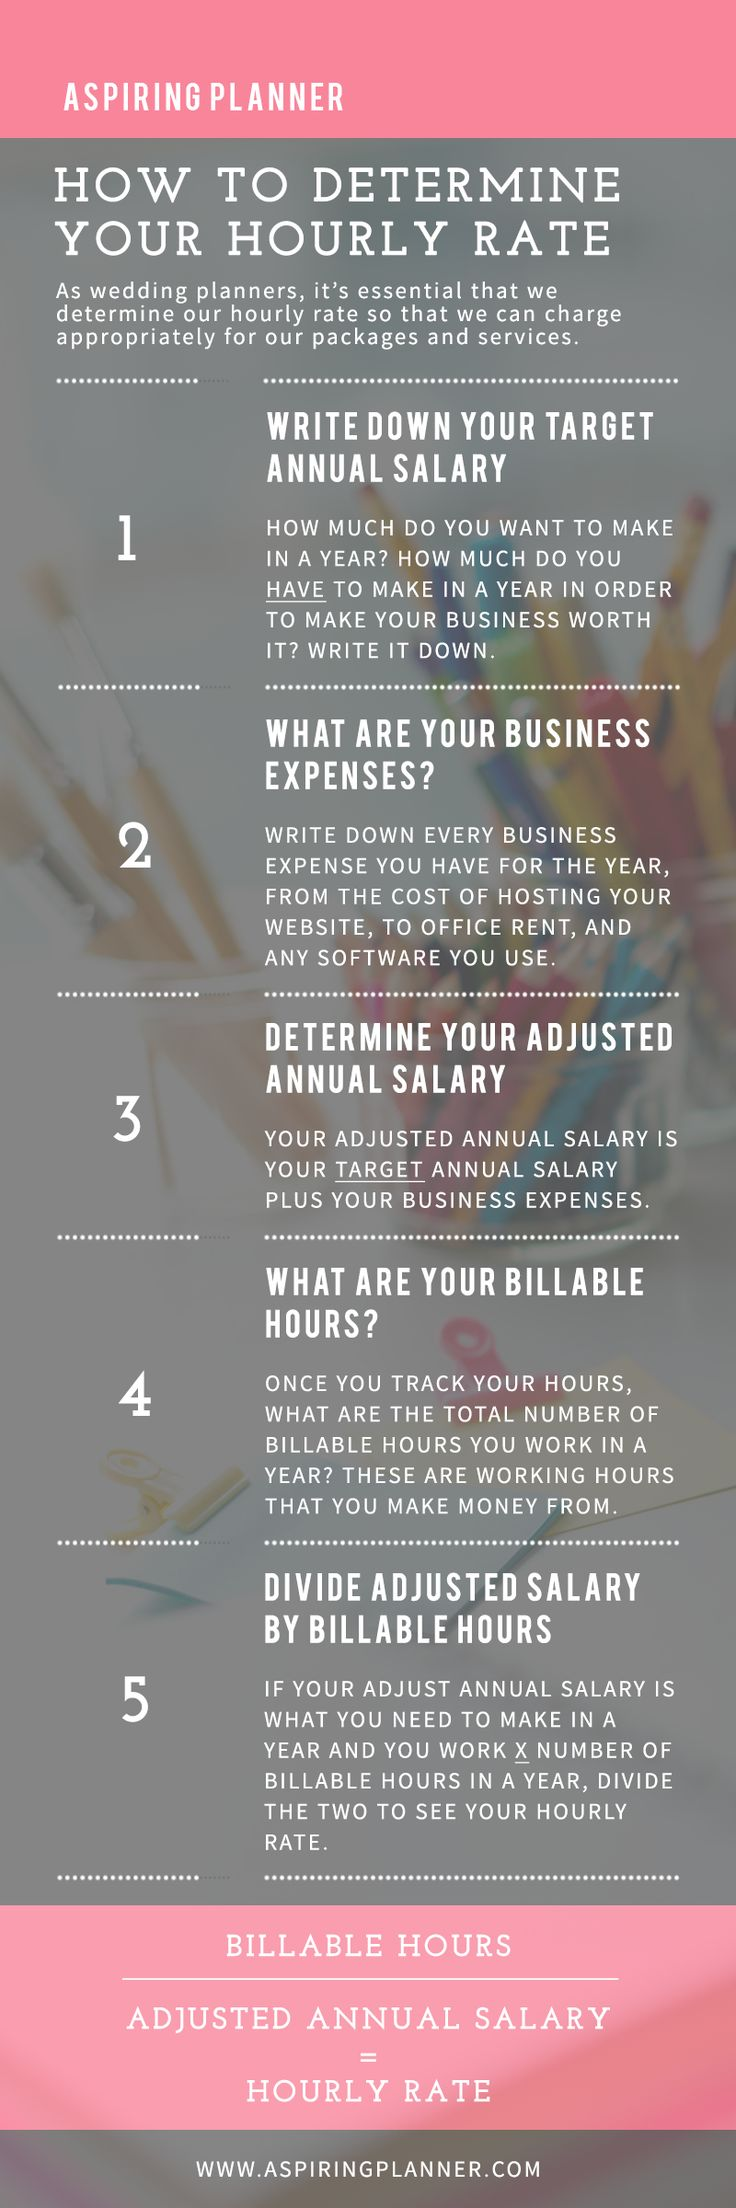 For Wedding Planners :: How to Price Your Wedding Services and Determine Your Hourly Rate | www.aspiringplanner.com